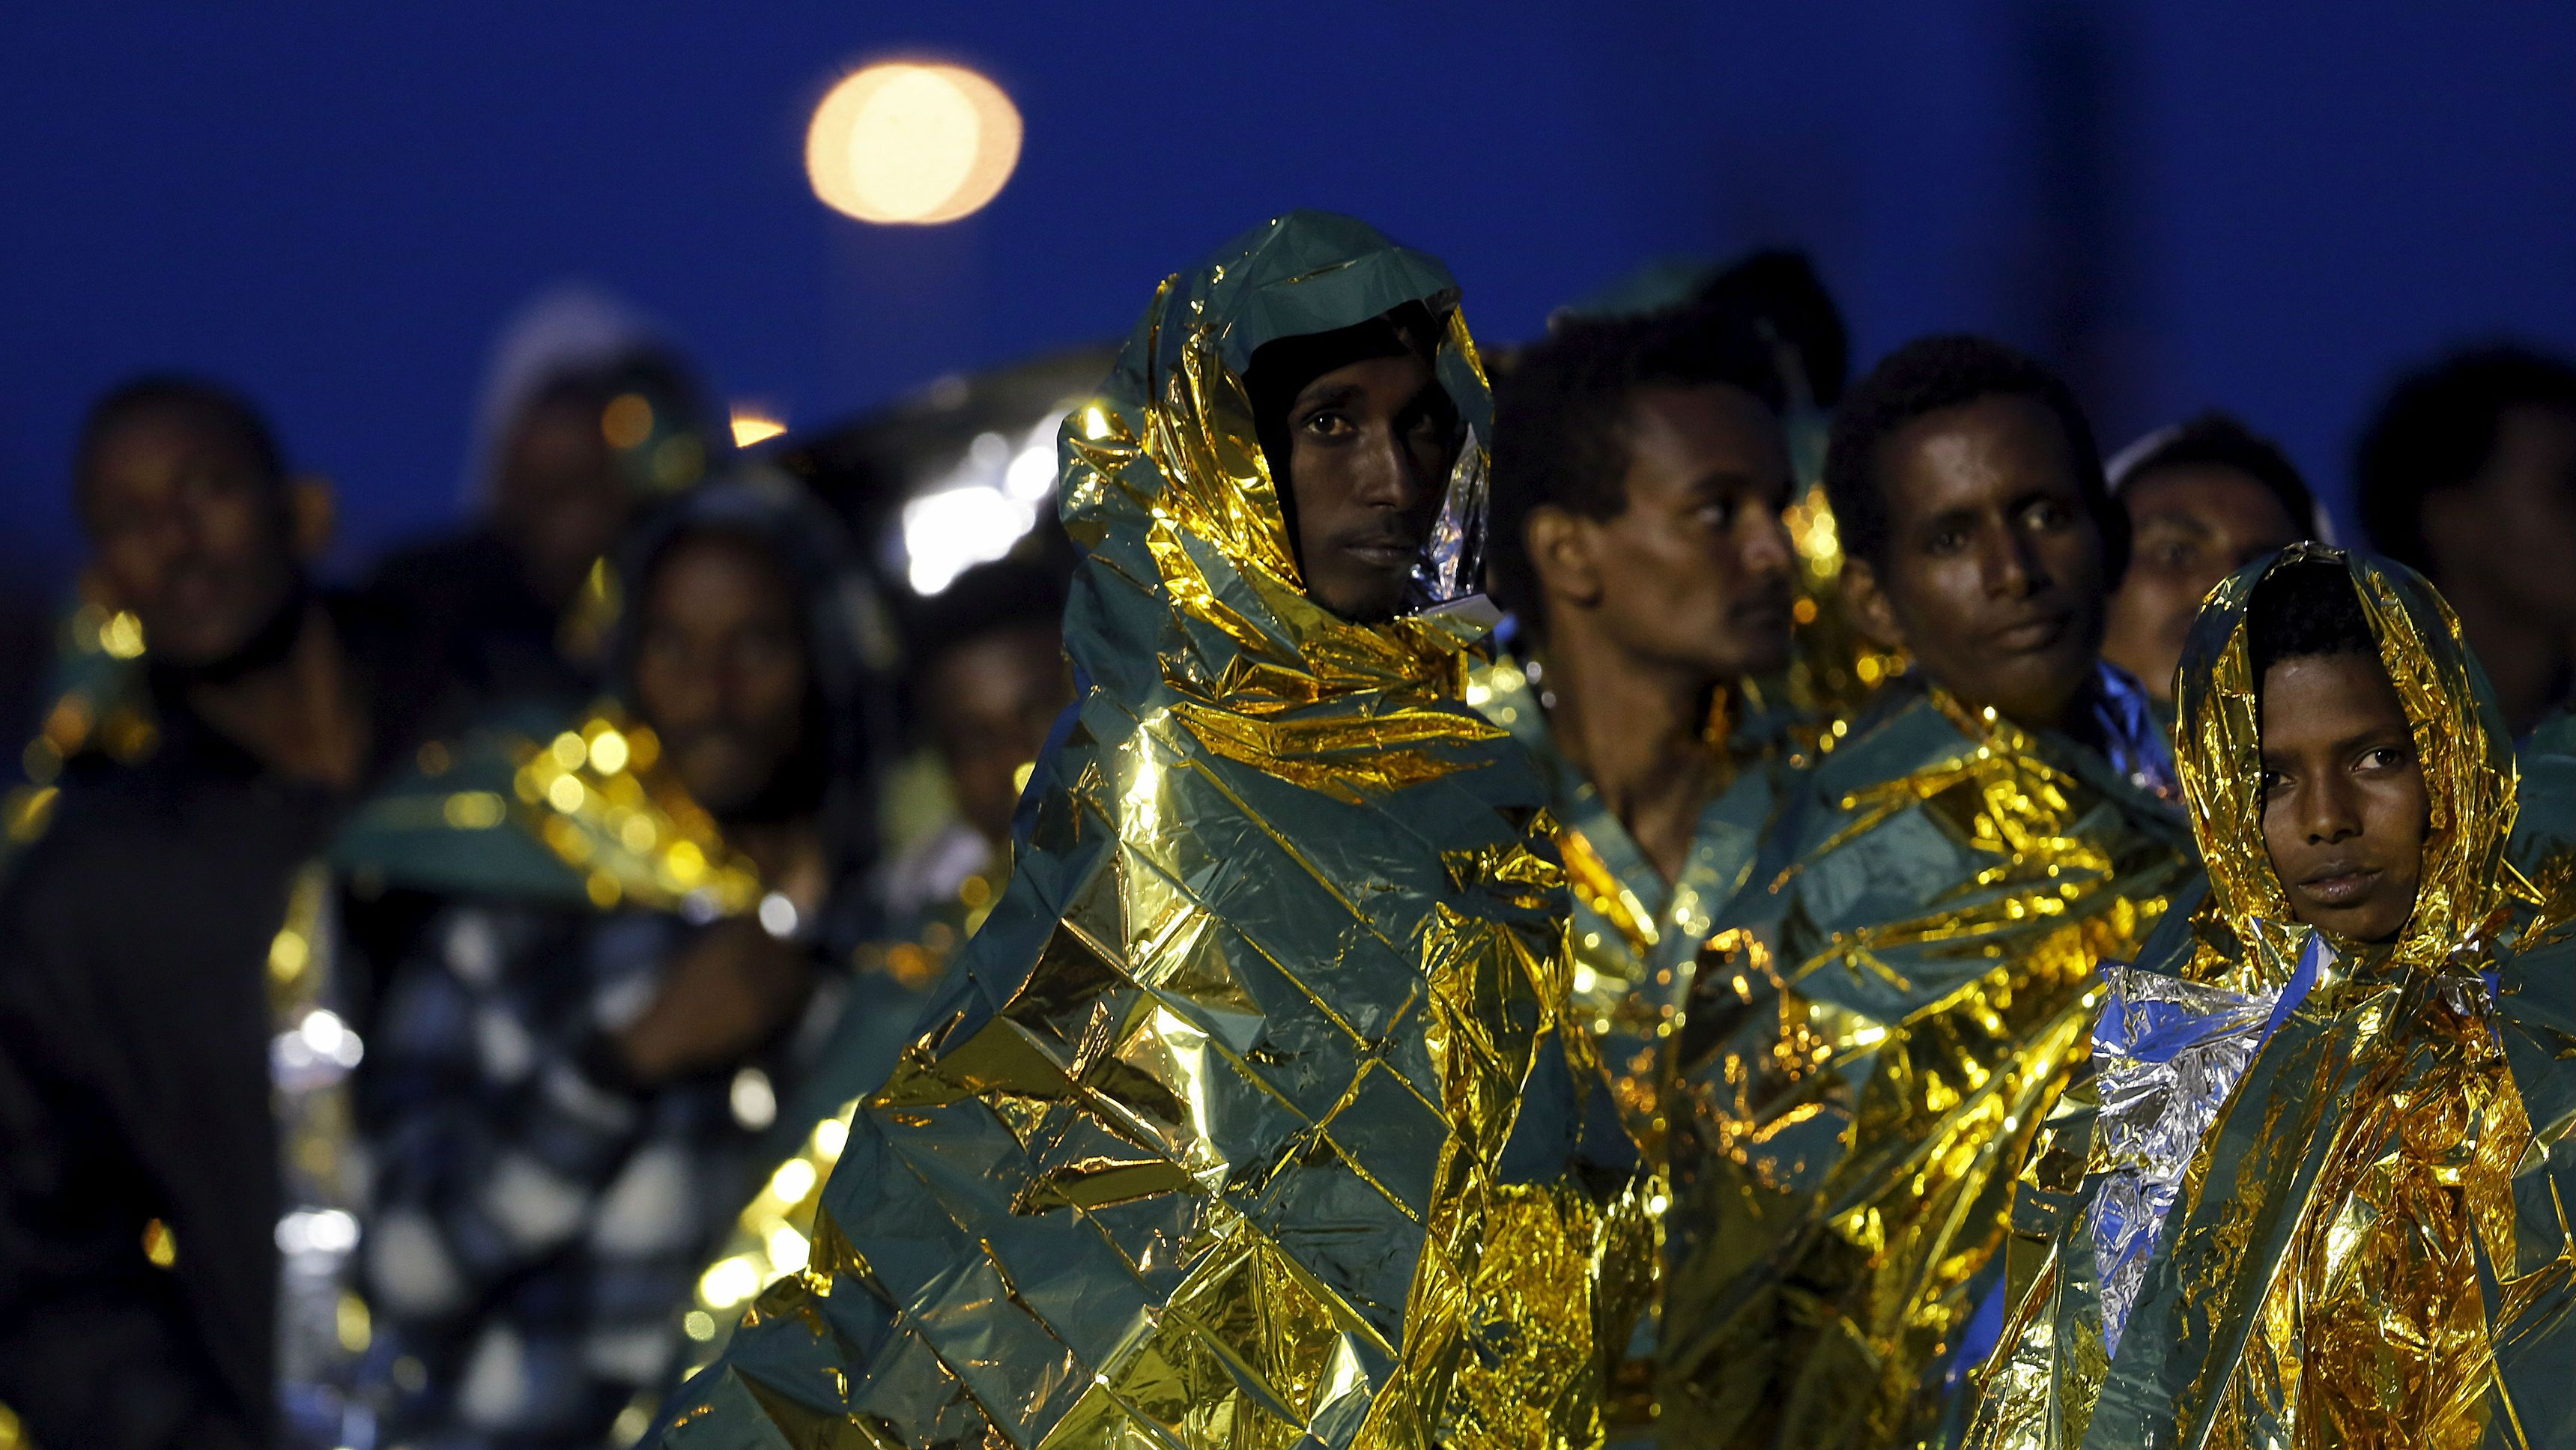 Migrants cover themselves with thermal blankets as they stand in line after disembarking in the Sicilian harbour of Augusta, Italy, May 30, 2015. Close to 1,000 migrants rescued in on-going operations are brought safely to port in Sicily as Italian authorities say over 4,000 migrants have been saved from the Mediterranean in twenty-four hours and 17 migrants have been found dead on a boat. REUTERS/Antonio Parrinello